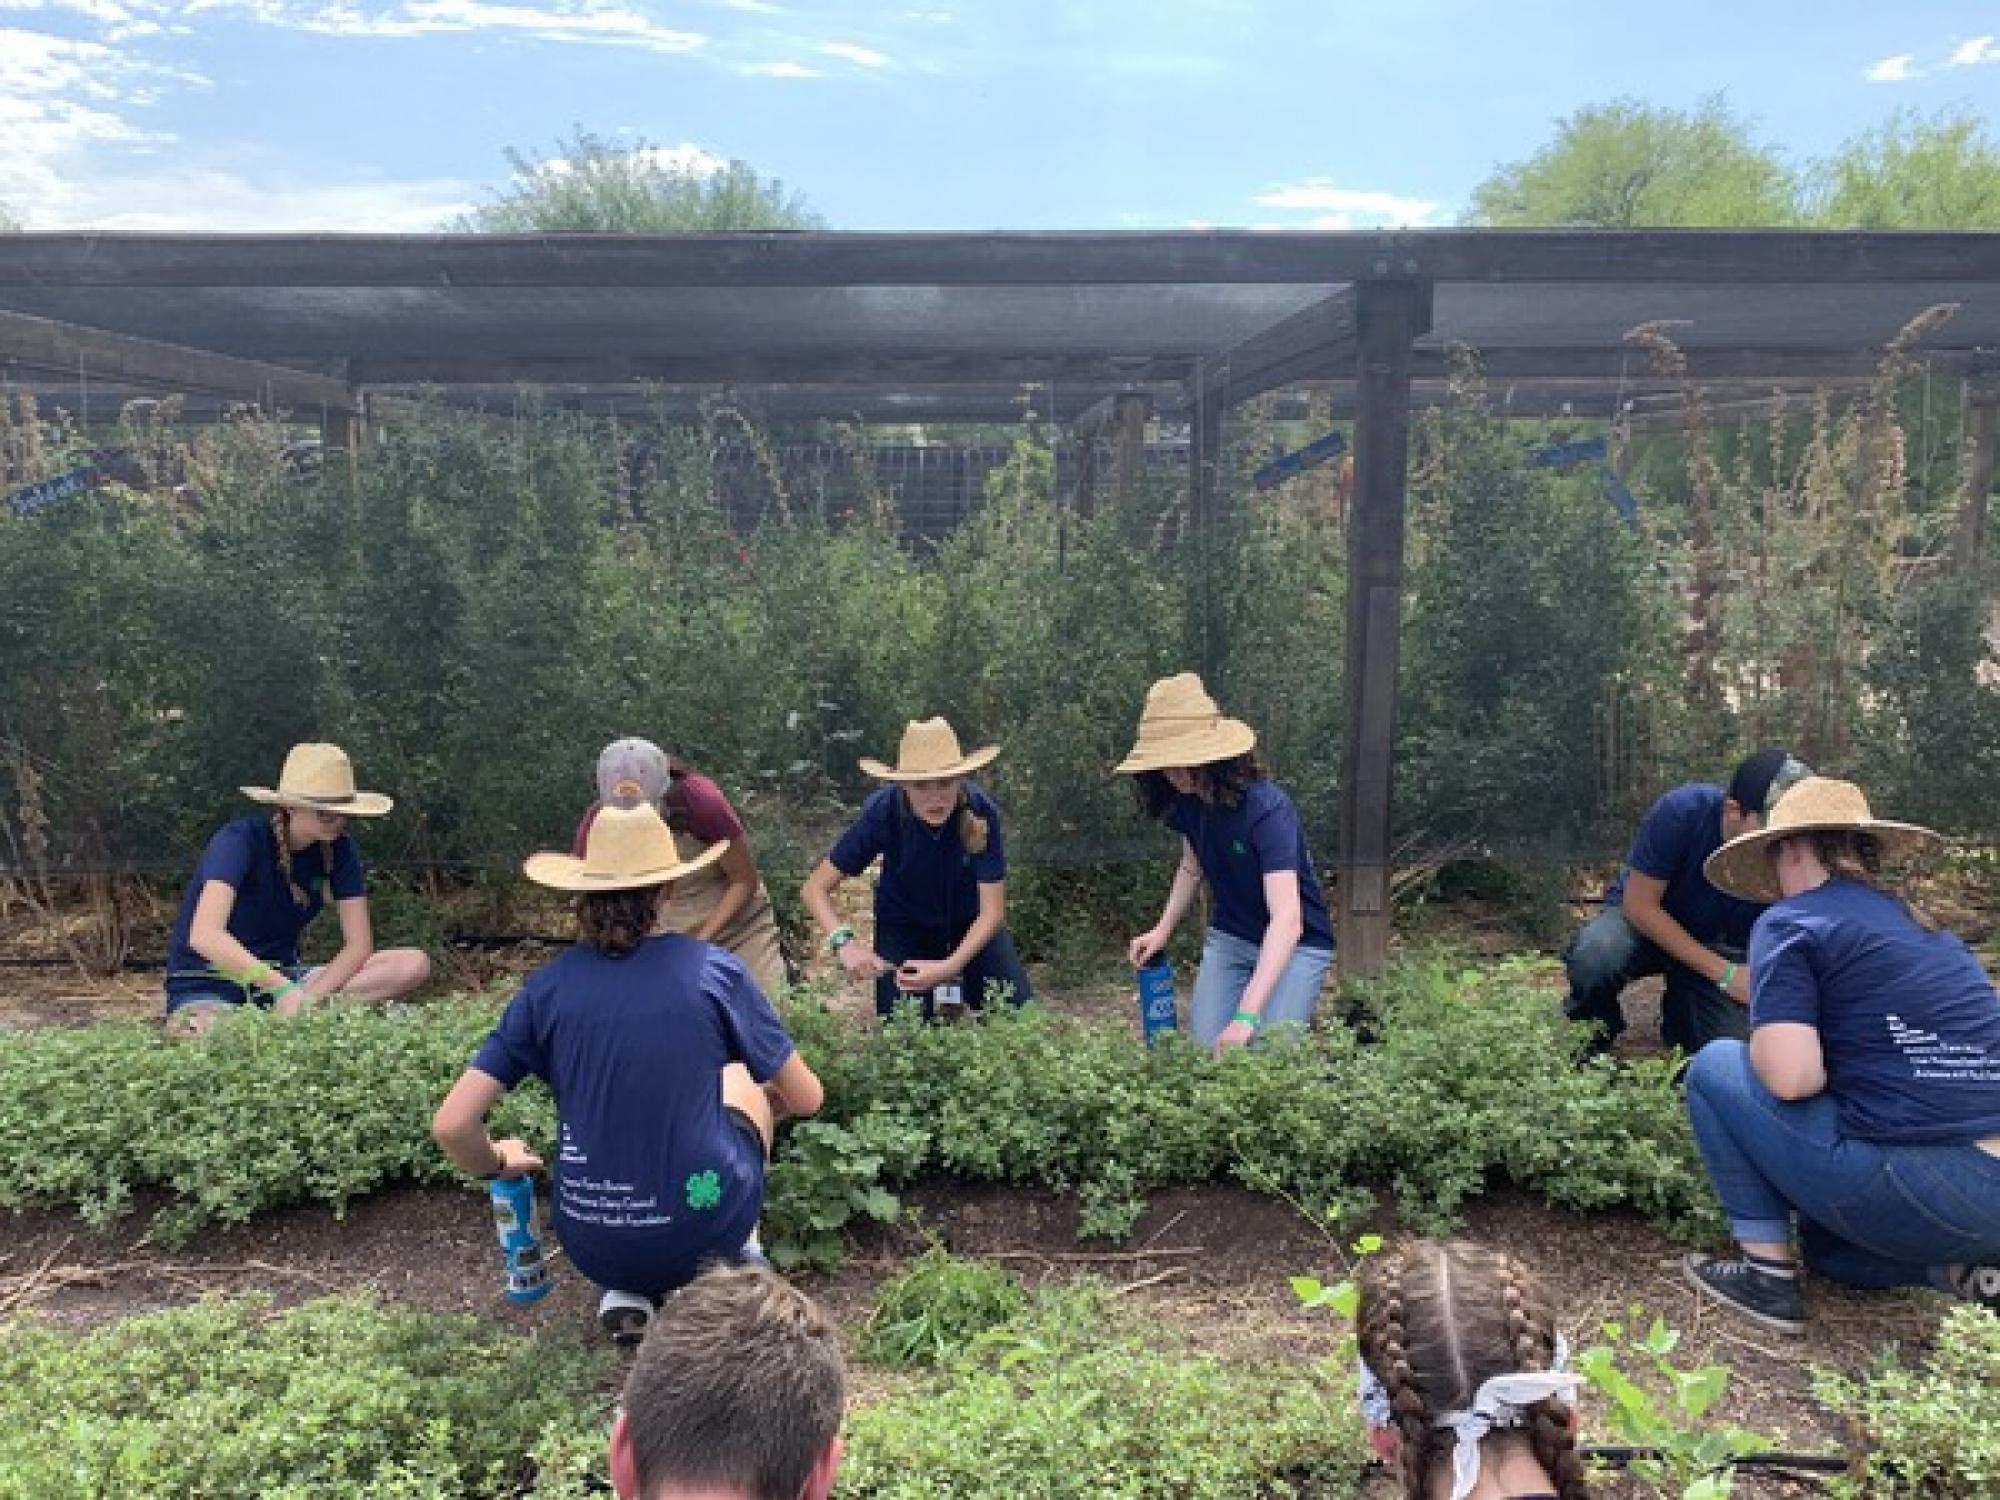 As part of their community service projects, 4-Hers tended the garden at the Tucson Village Farm, a seed-to-table program designed to reconnect young people to a healthy food system, teach them how to grow and prepare fresh food, and empower them to make